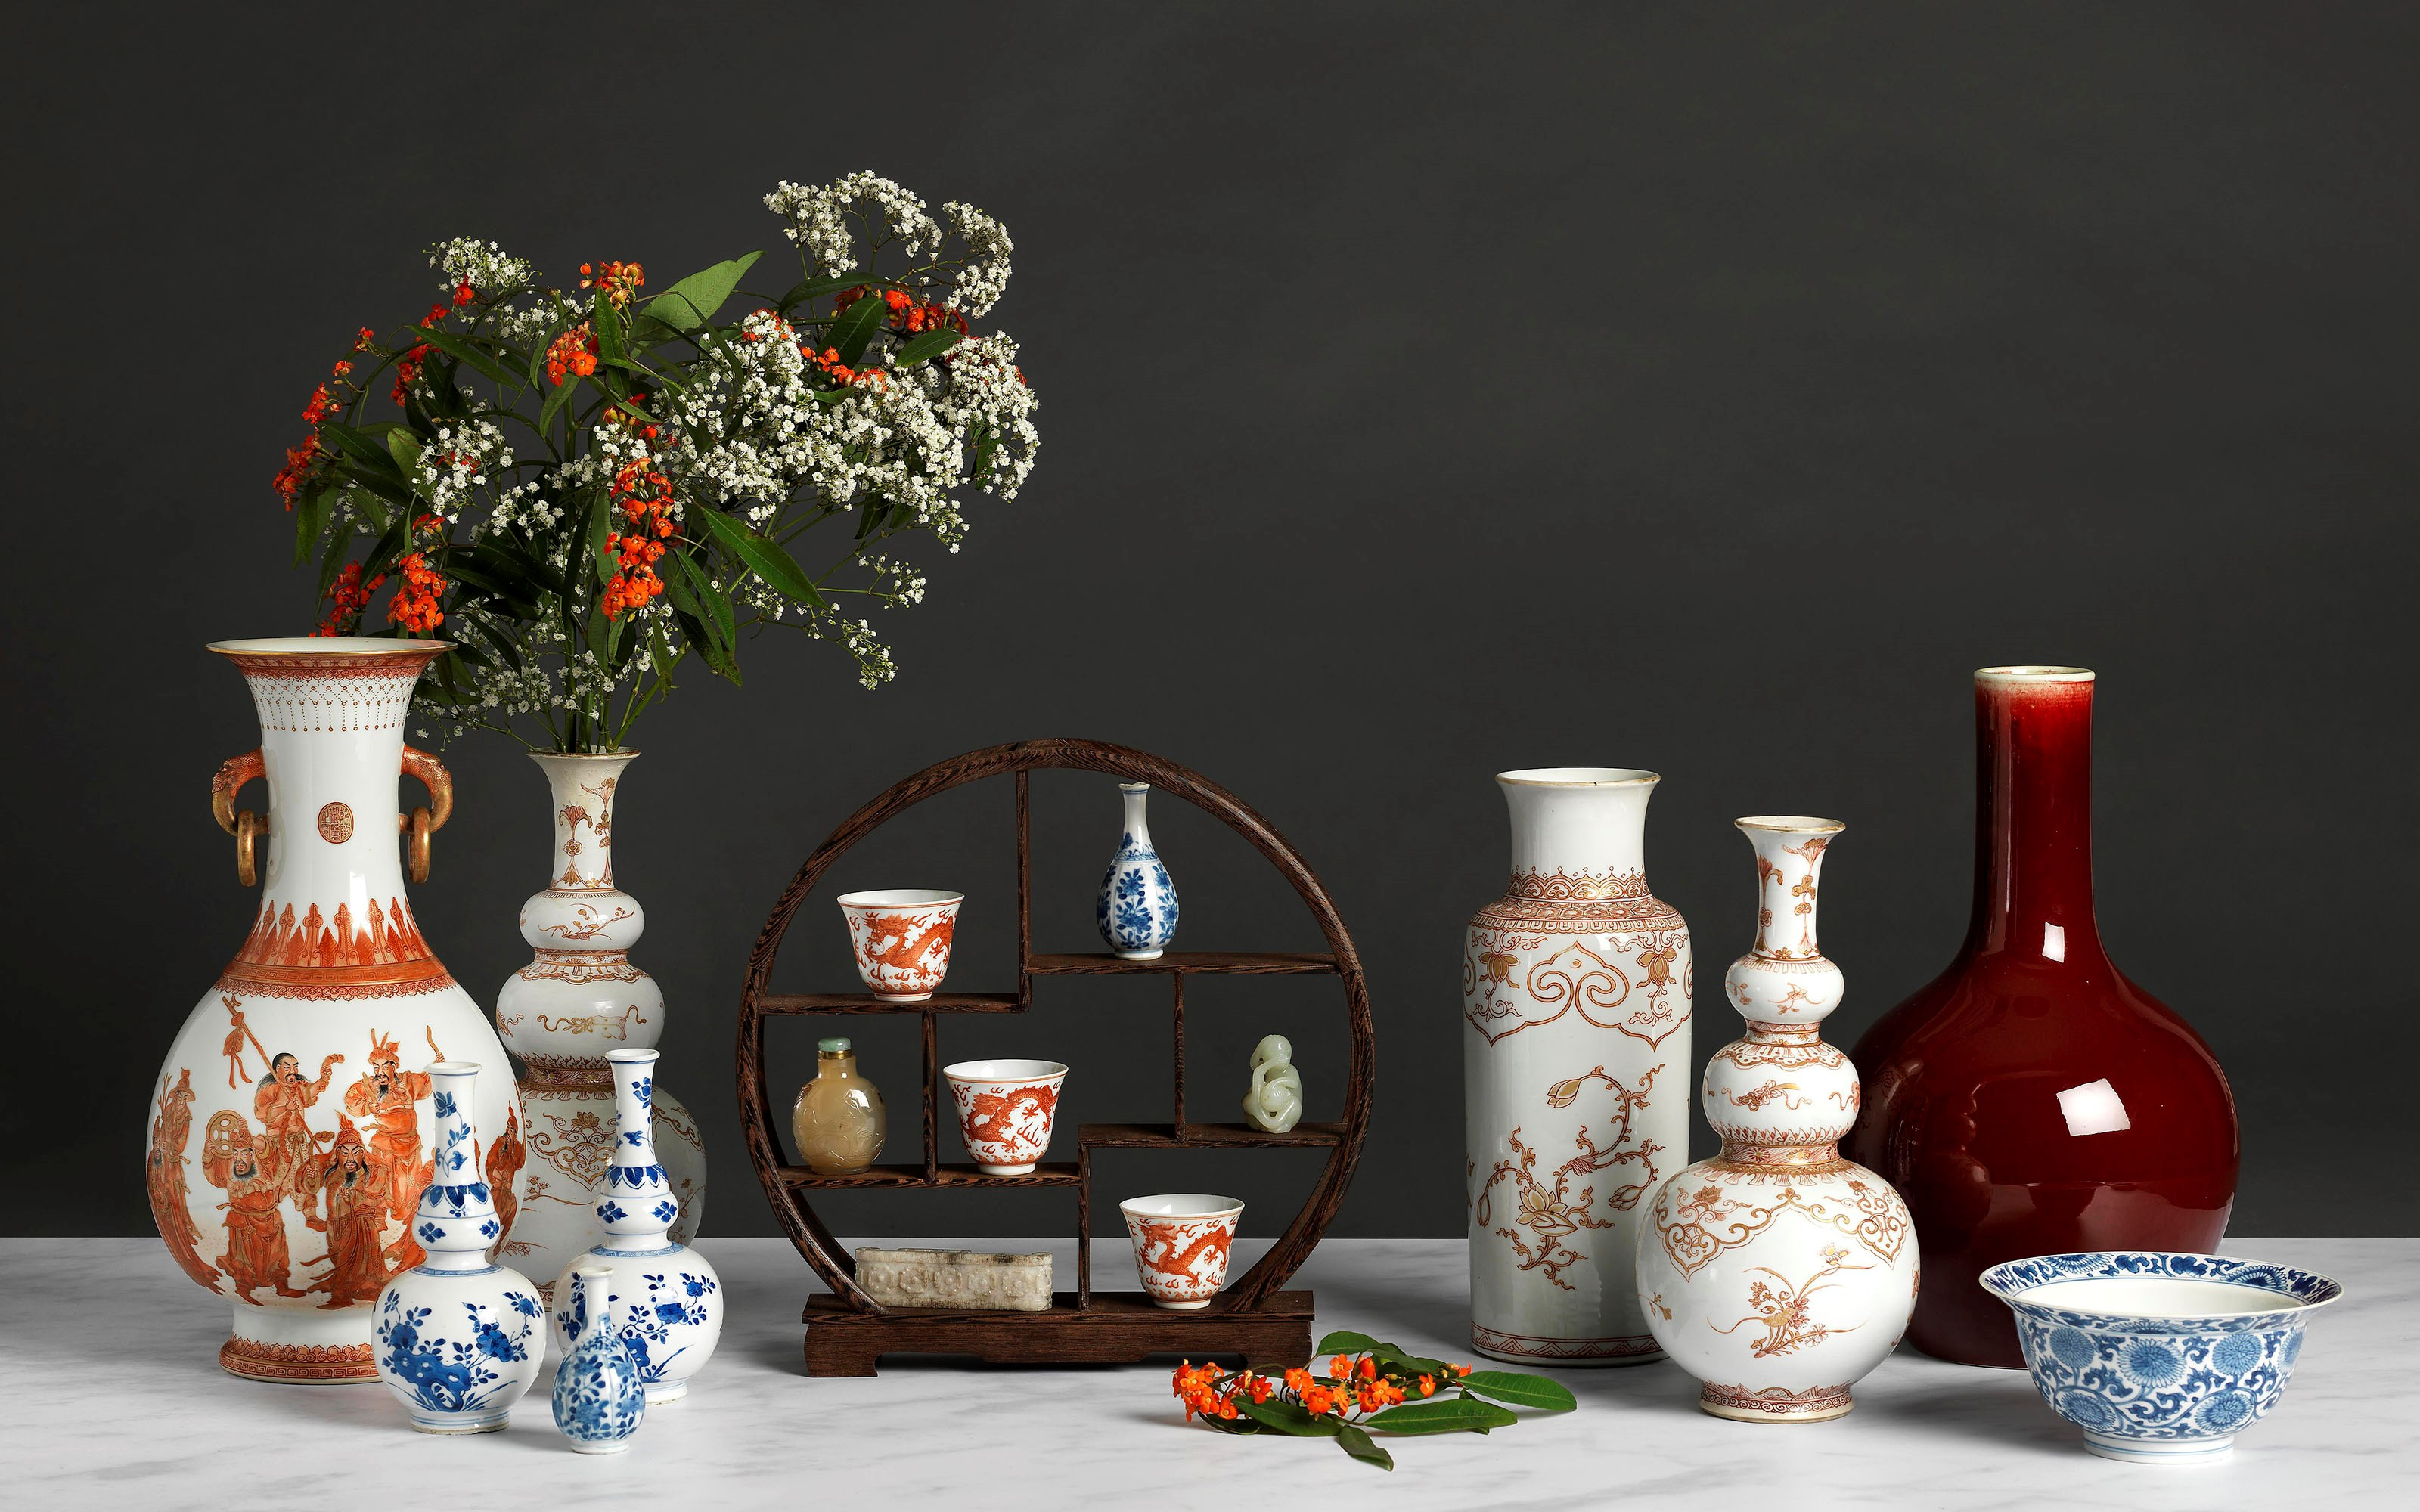 The Art of China: Spring Editi auction at Christies